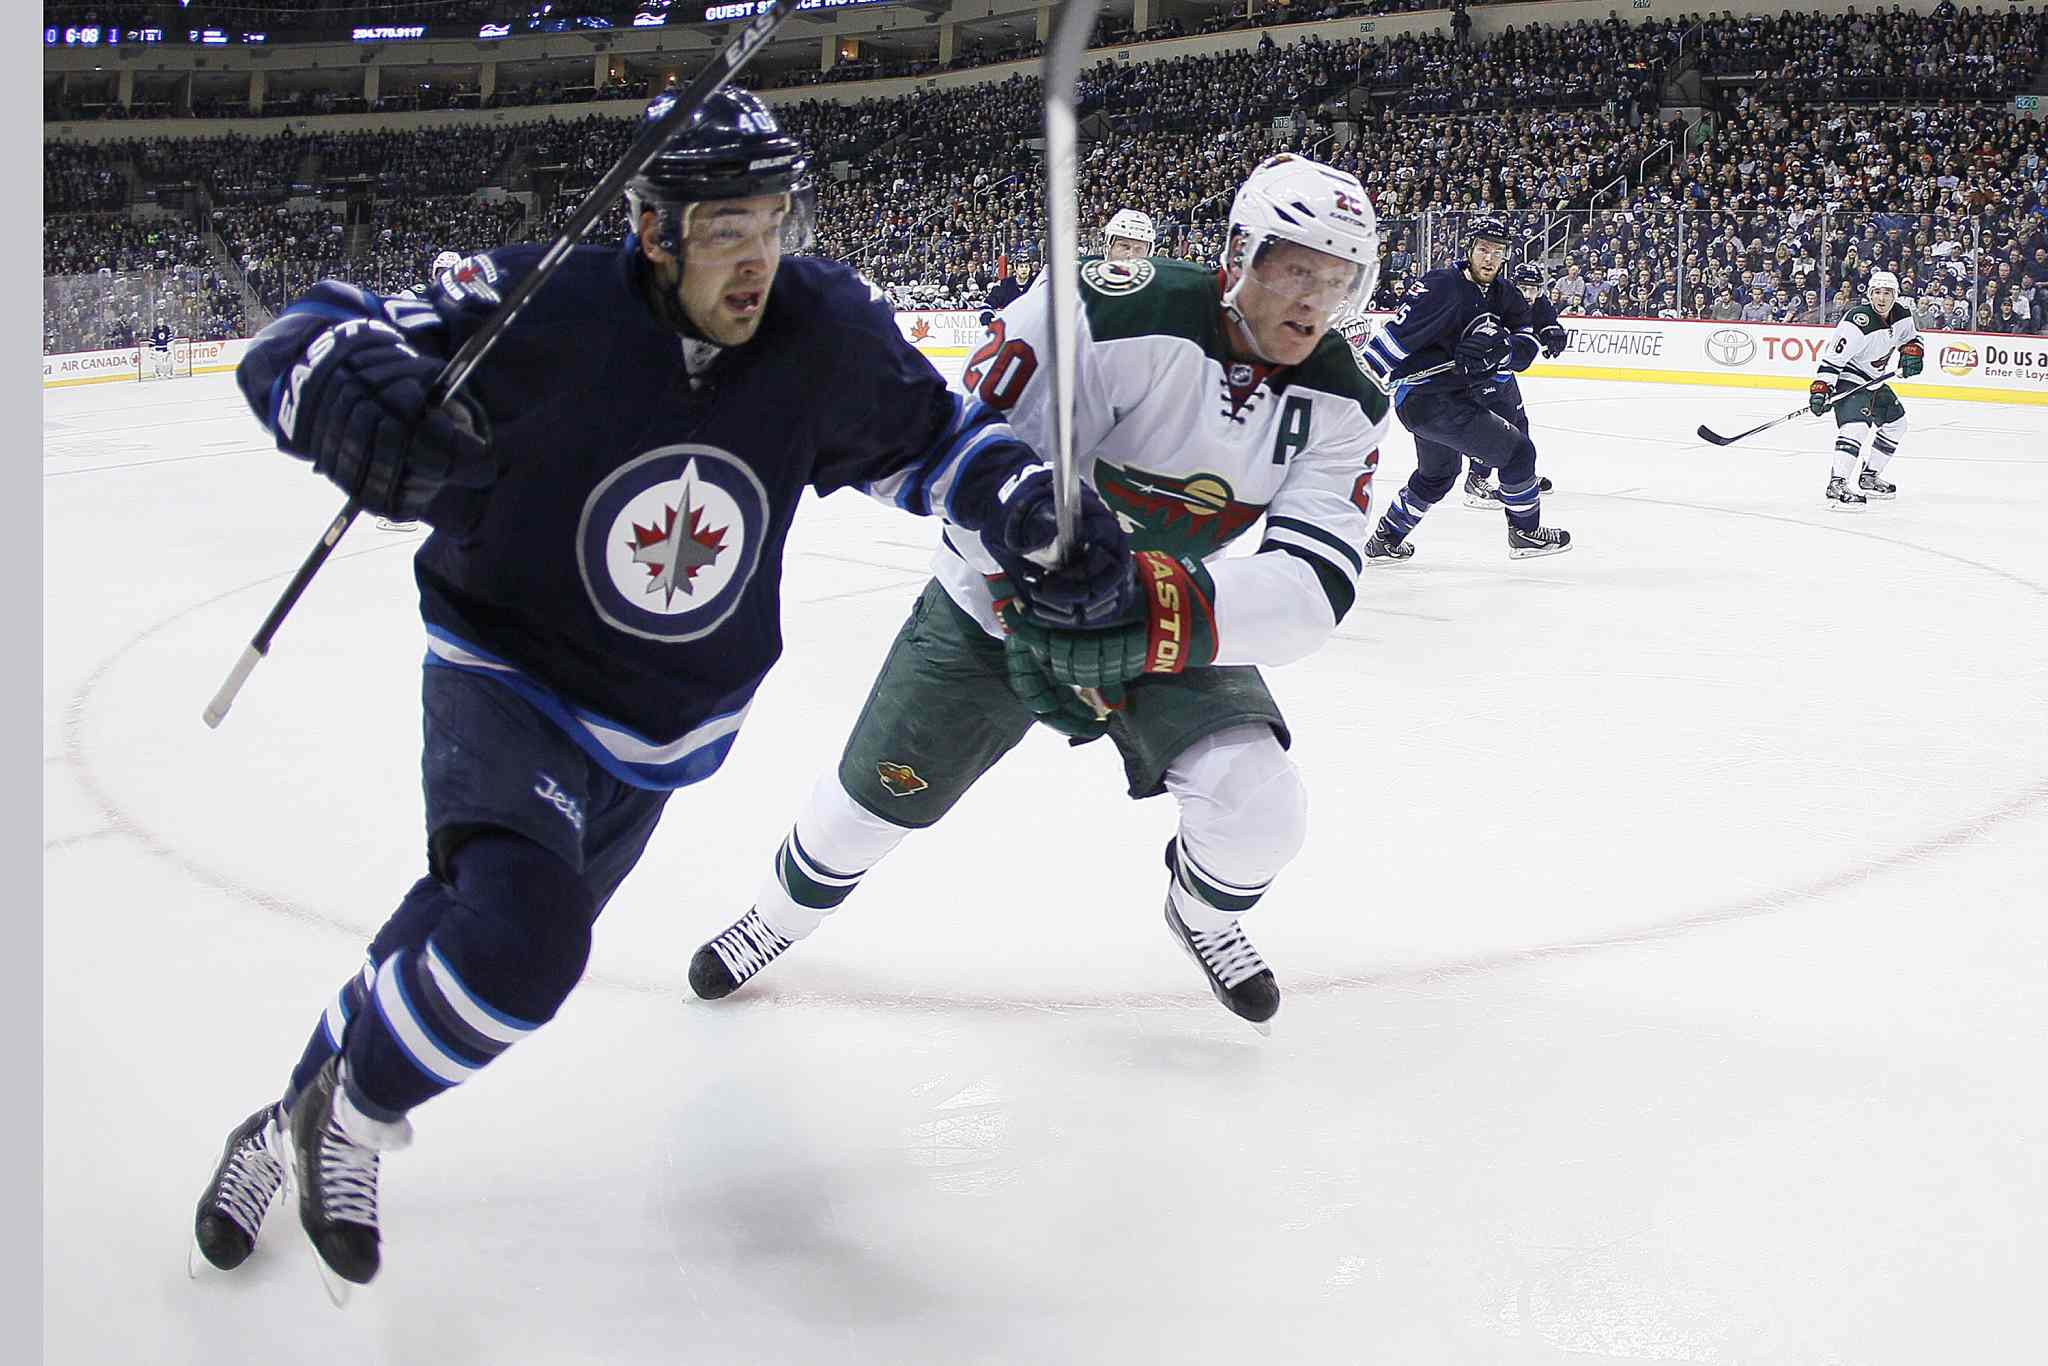 Jets forward Devin Setoguchi and Wild defenceman Ryan Suter drive for the puck in the corner during the second period.